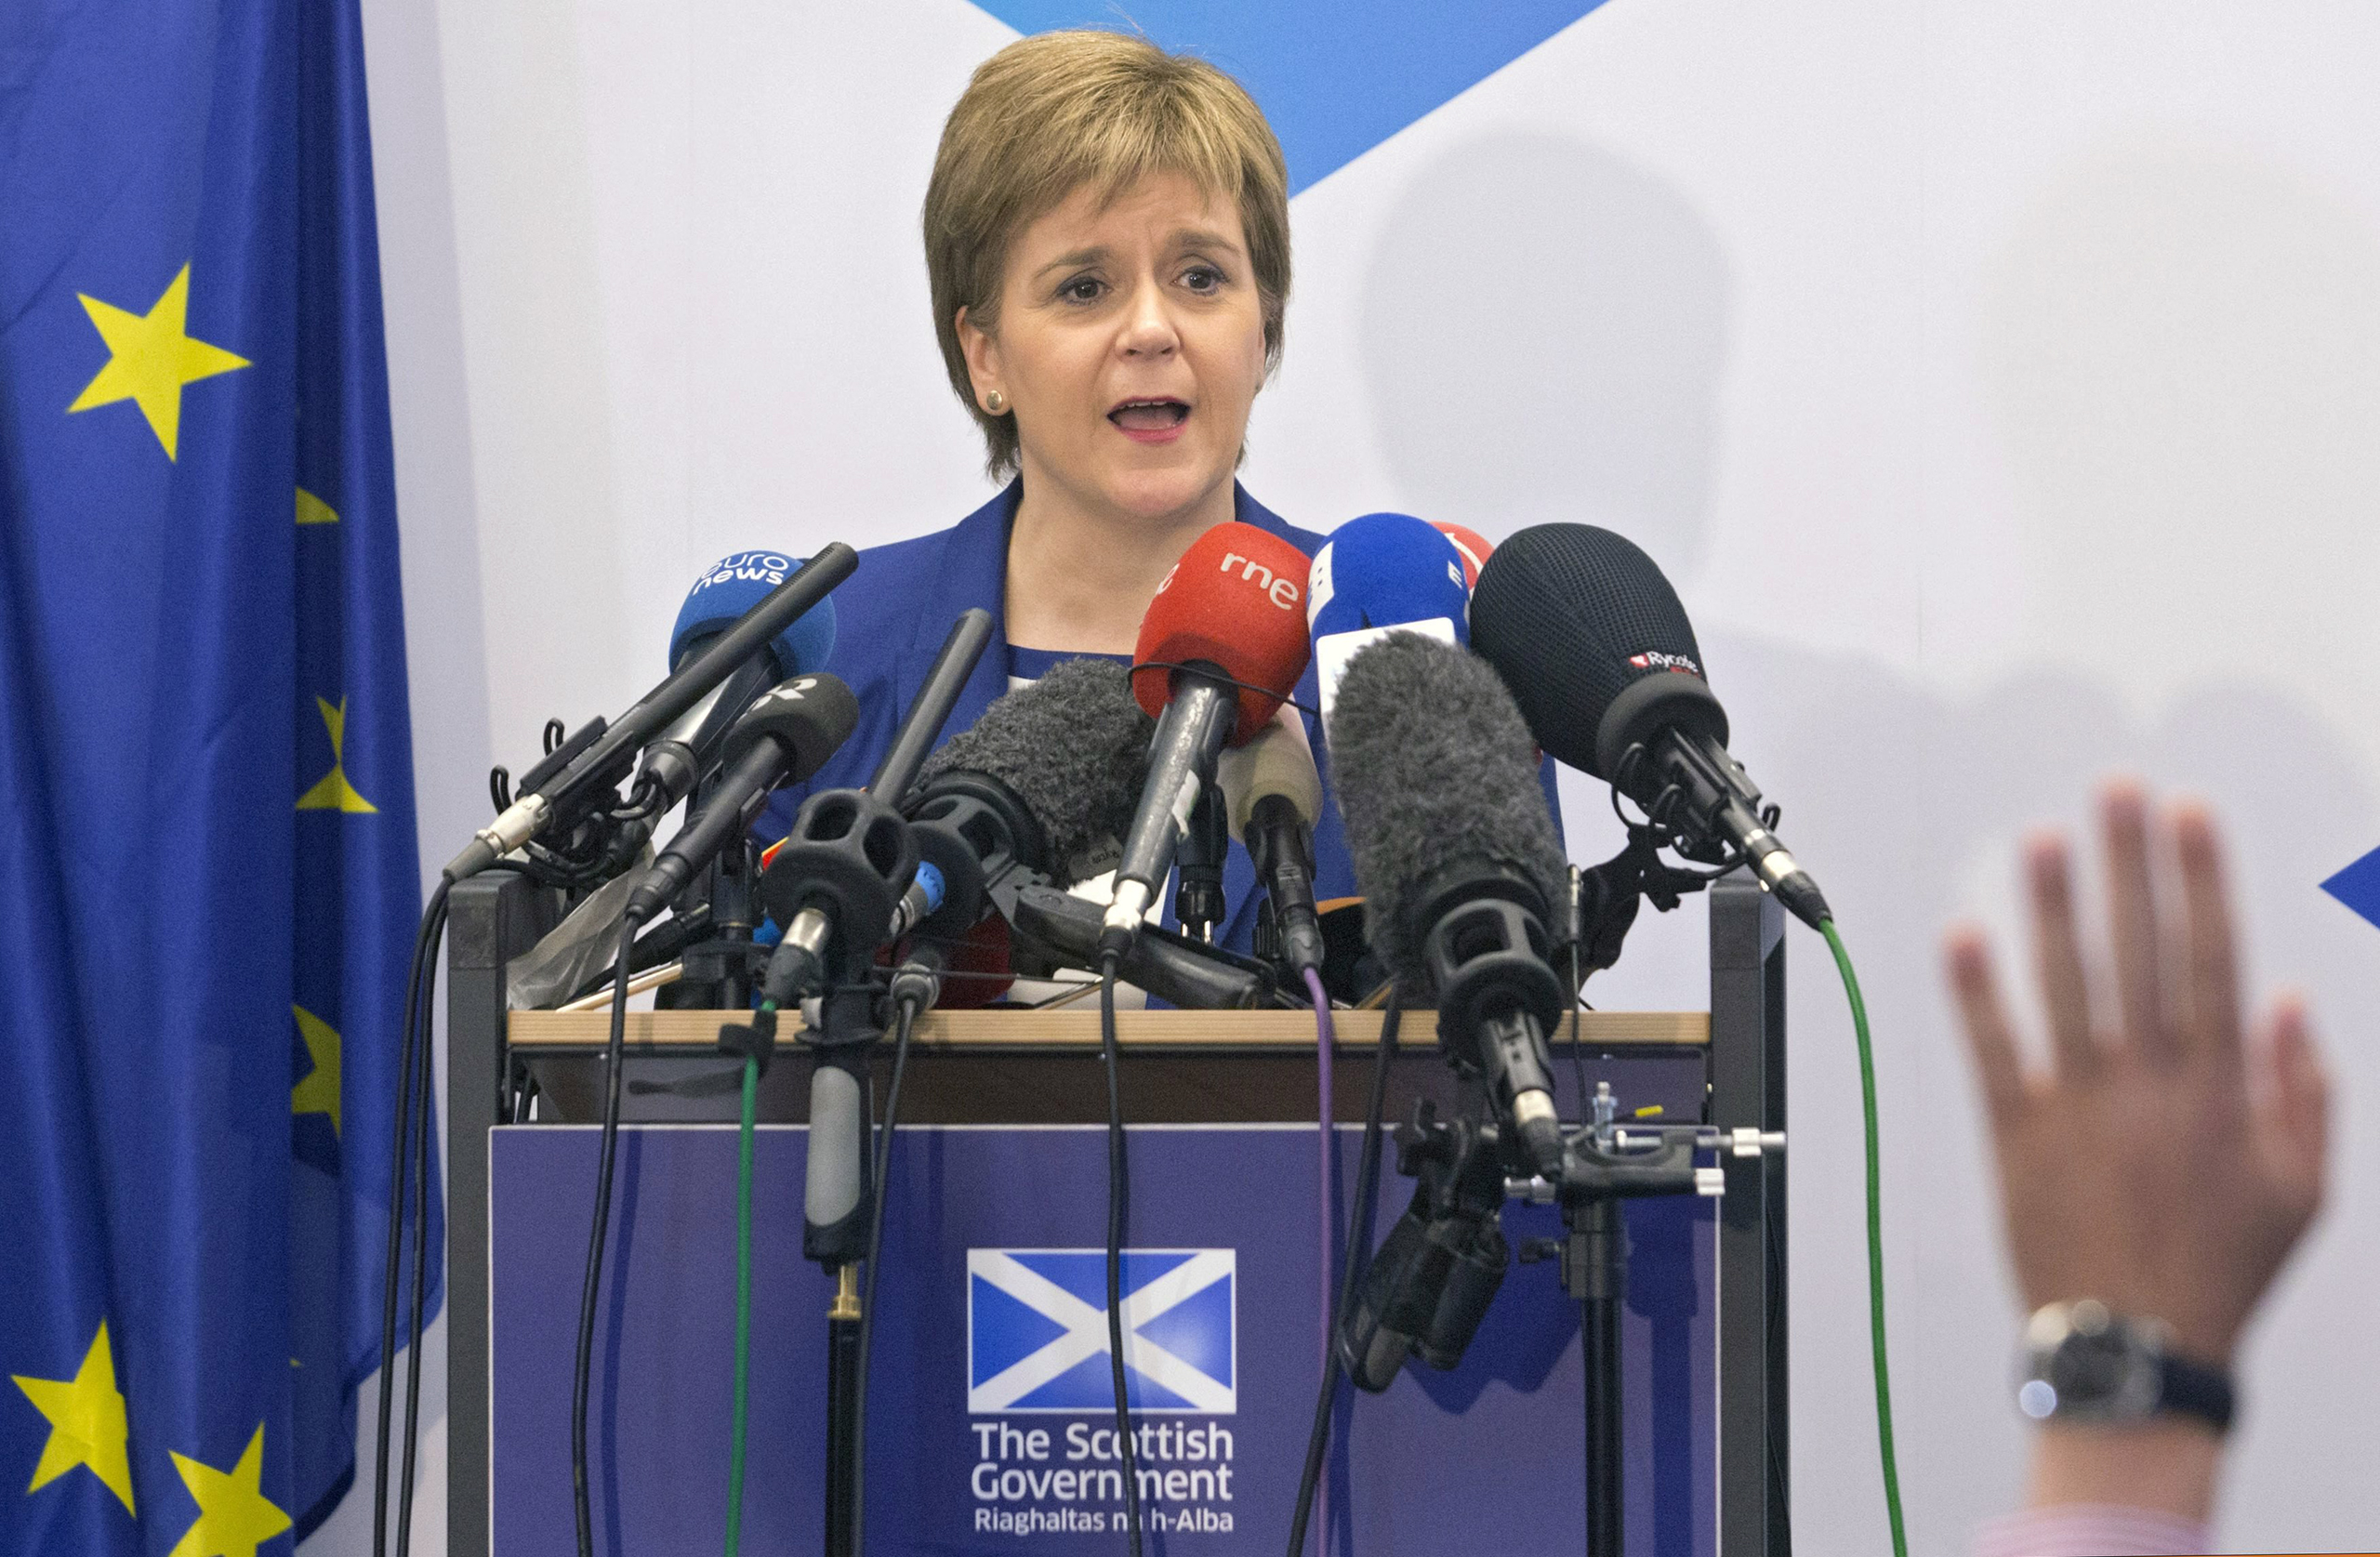 Scotland's First Minister Nicola Sturgeon holds a news conference at the Scotland House on her visit in Brussels, Belgium, June 29, 2016.